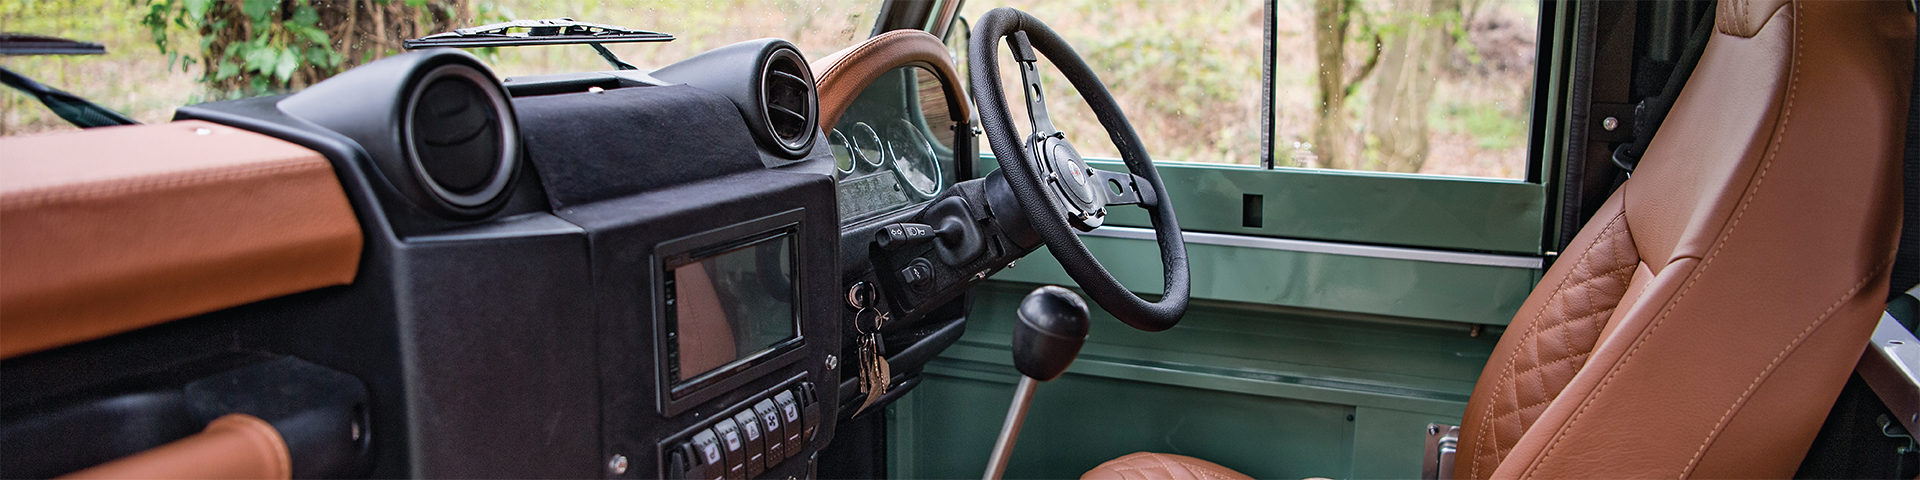 DEFENDER RESTORATION_HARRIET INTERIOR-01-2.jpg